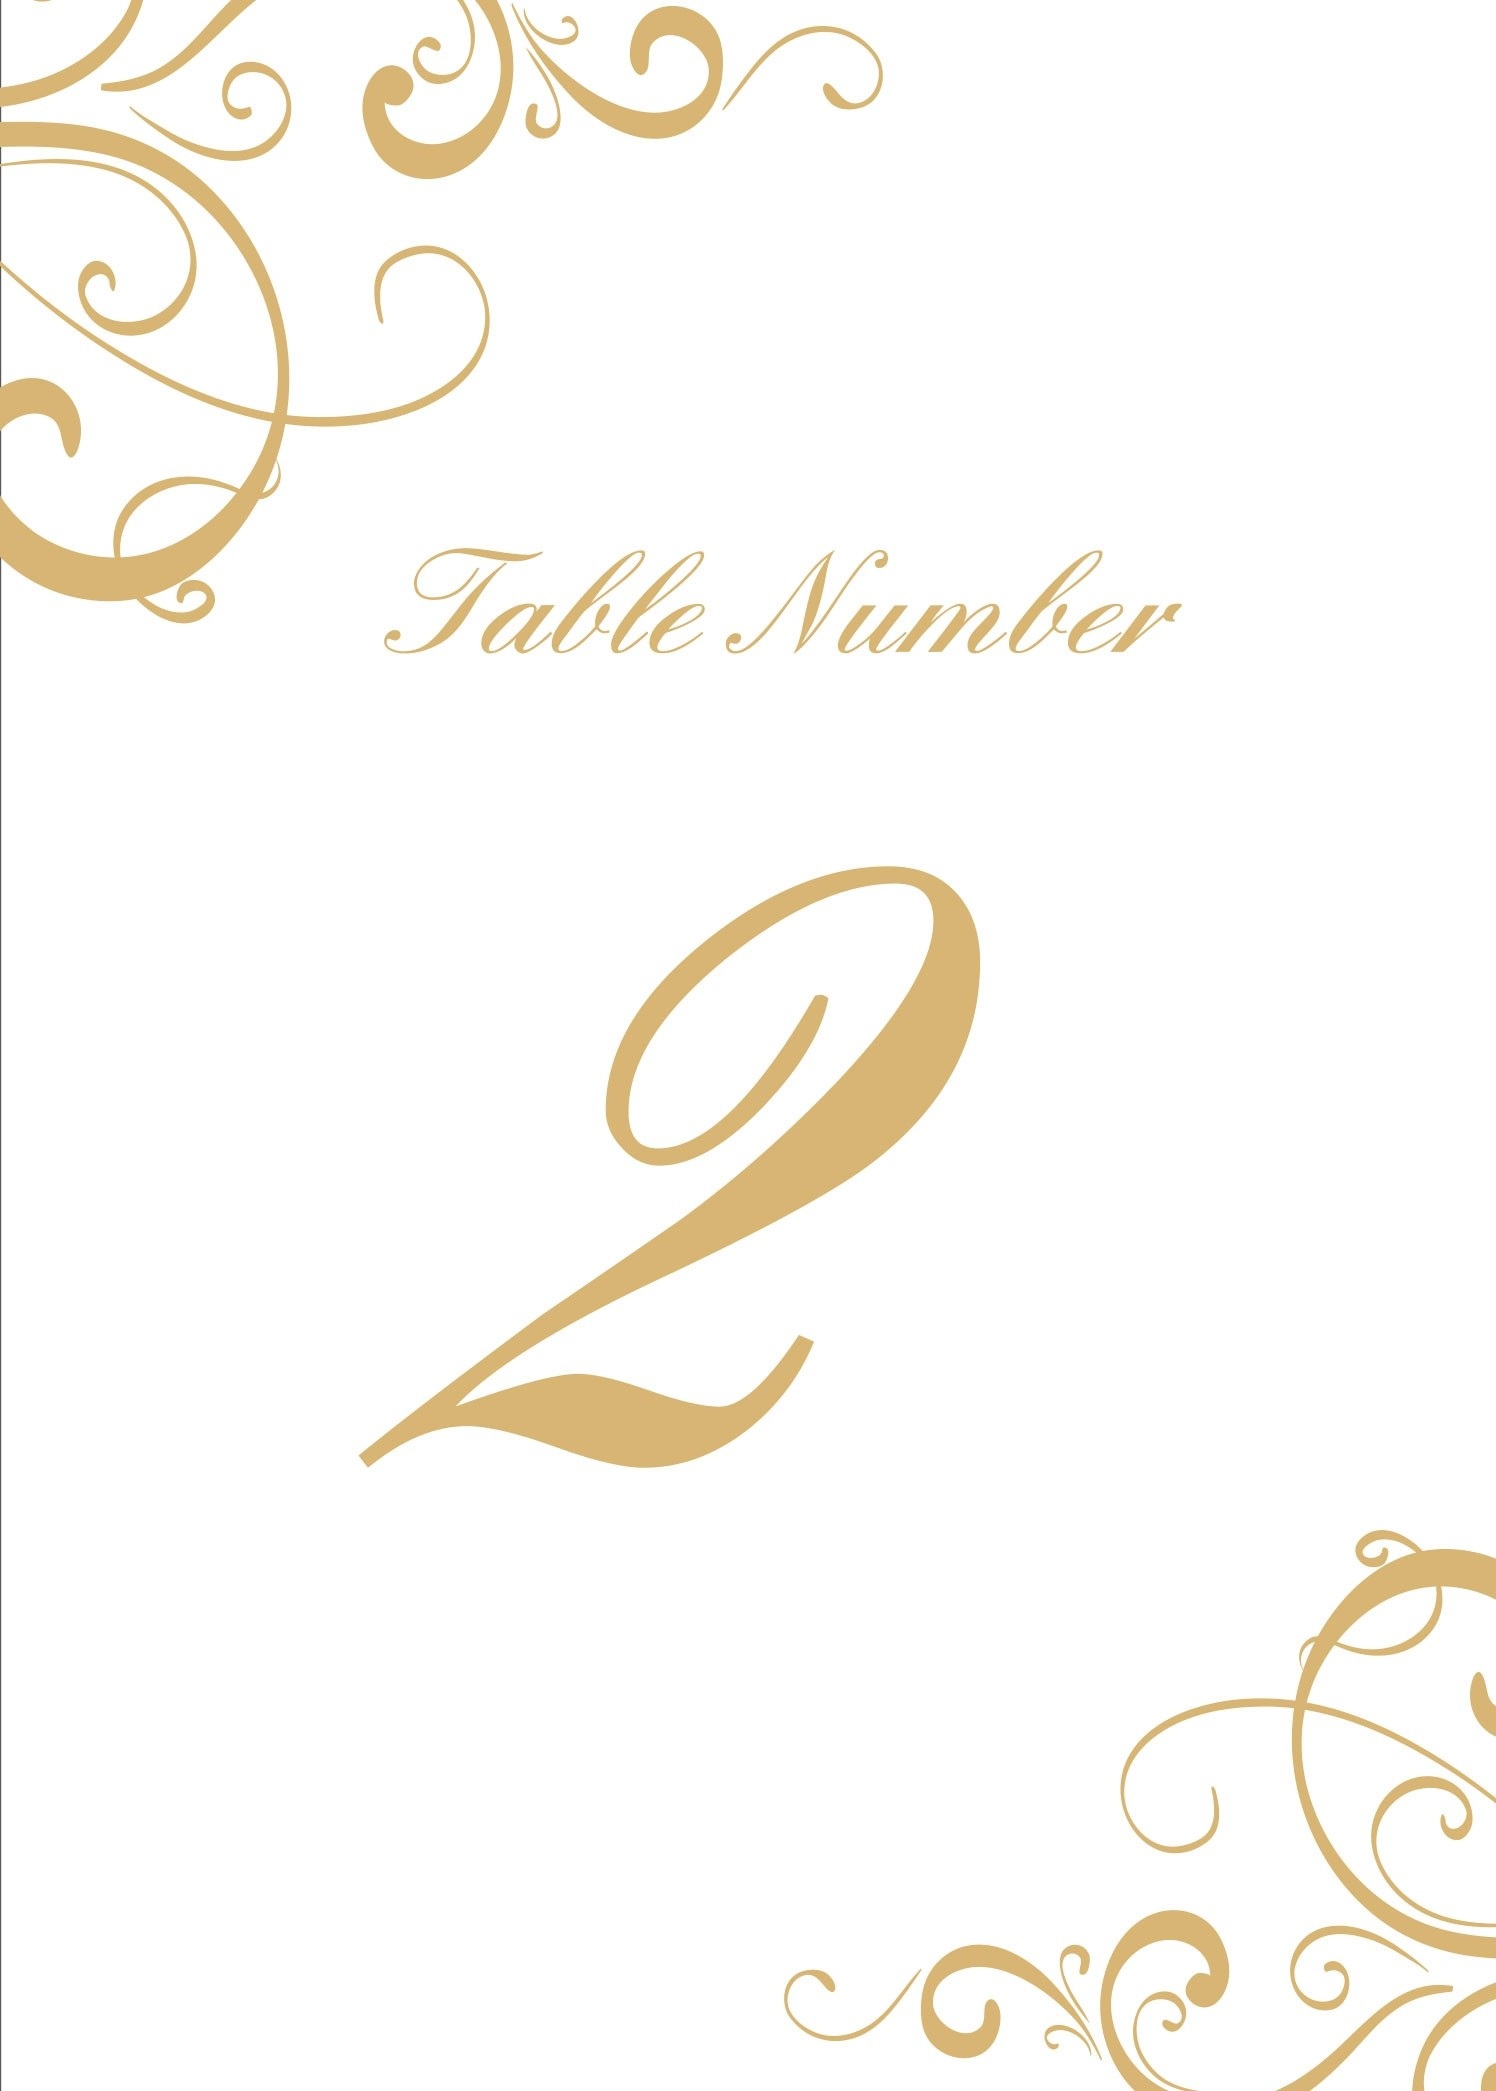 Sensational Wedding Table Numbers Printable Pdf By Basic Invite Download Free Architecture Designs Rallybritishbridgeorg